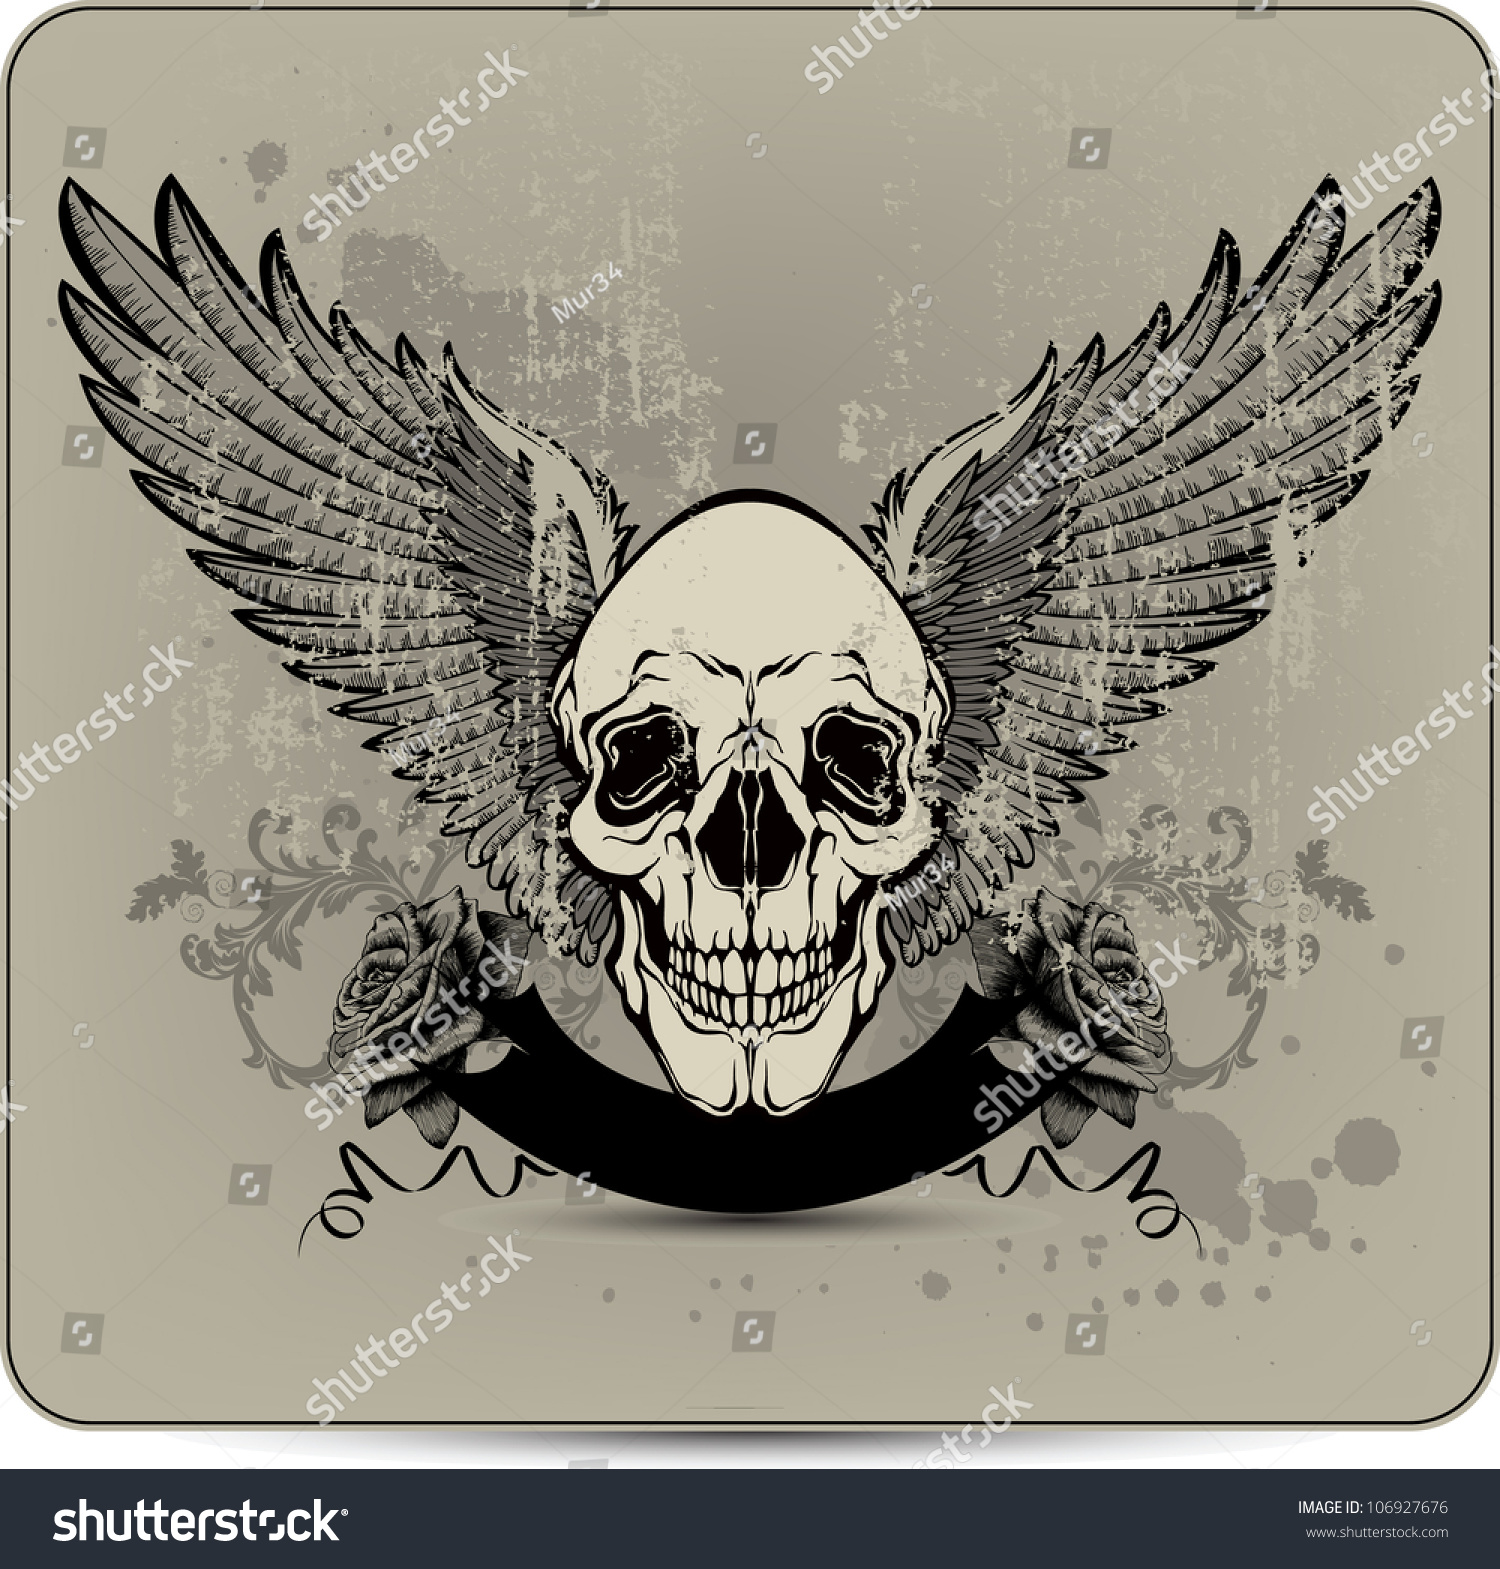 Hand Drawings Roses And Skulls: Skull With Wings And Roses, Hand-Drawing. Vector